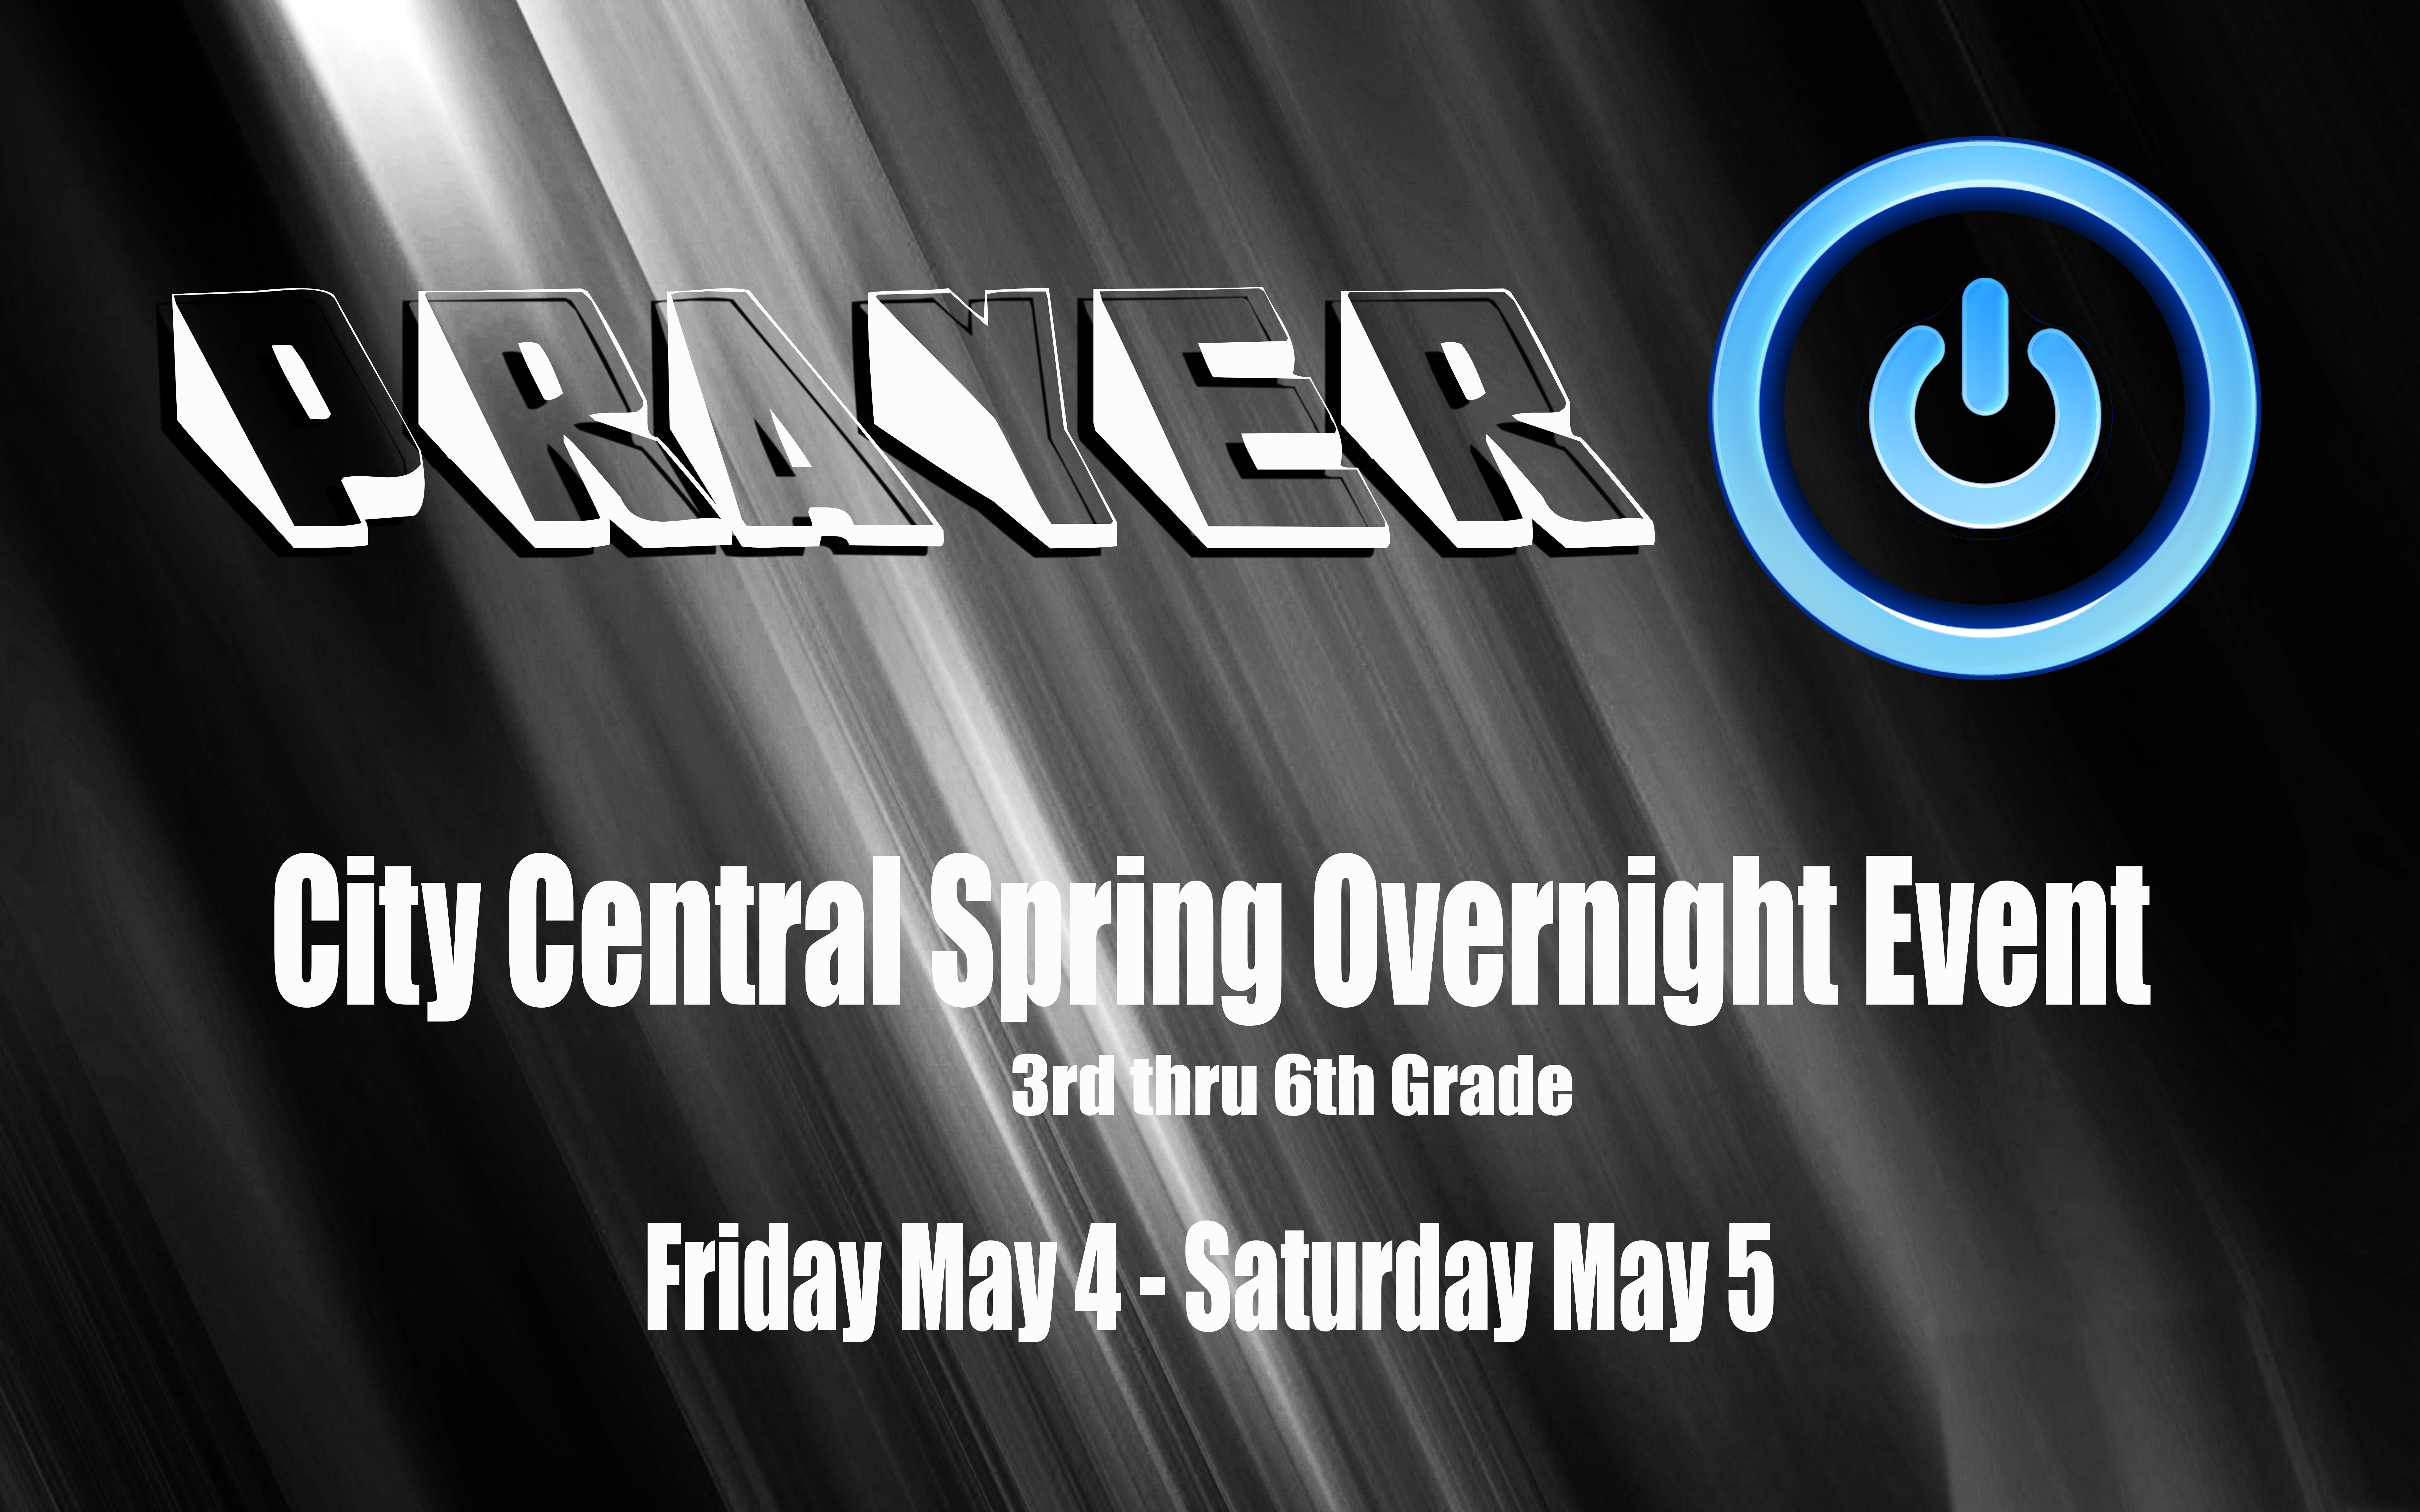 prayer power spring event general